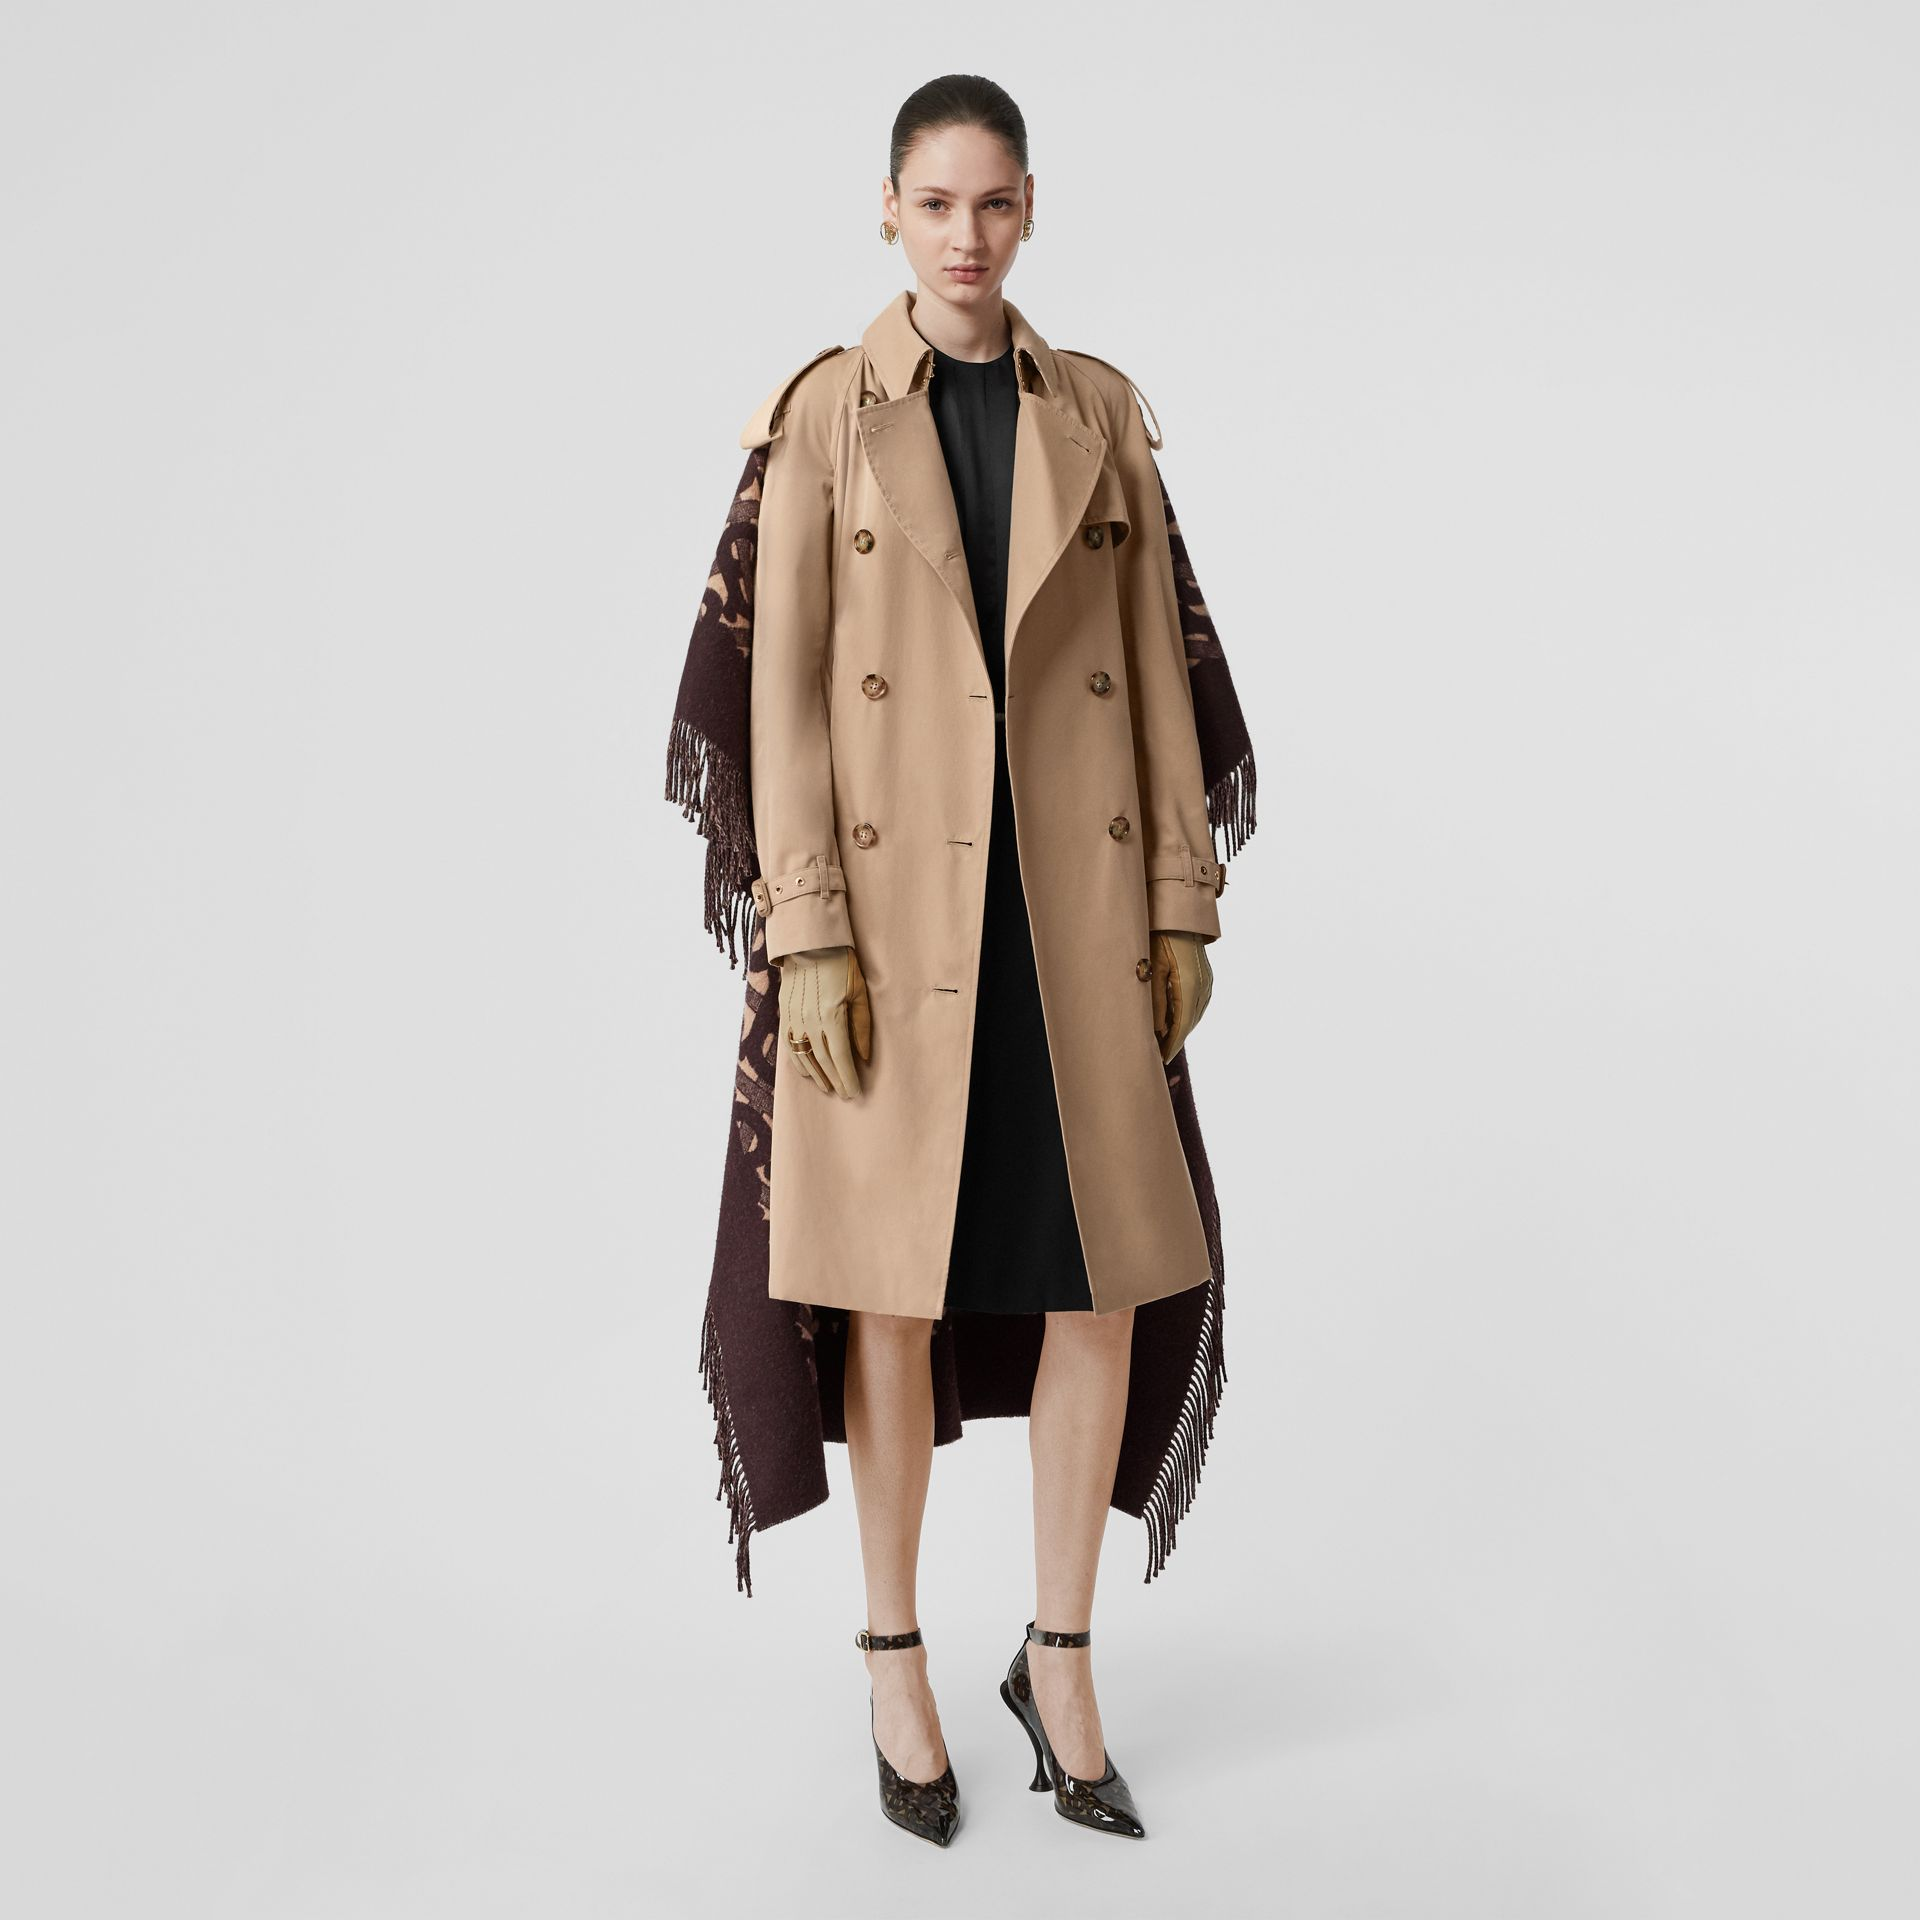 Blanket Detail Cotton Gabardine Trench Coat in Honey - Women | Burberry Singapore - gallery image 7